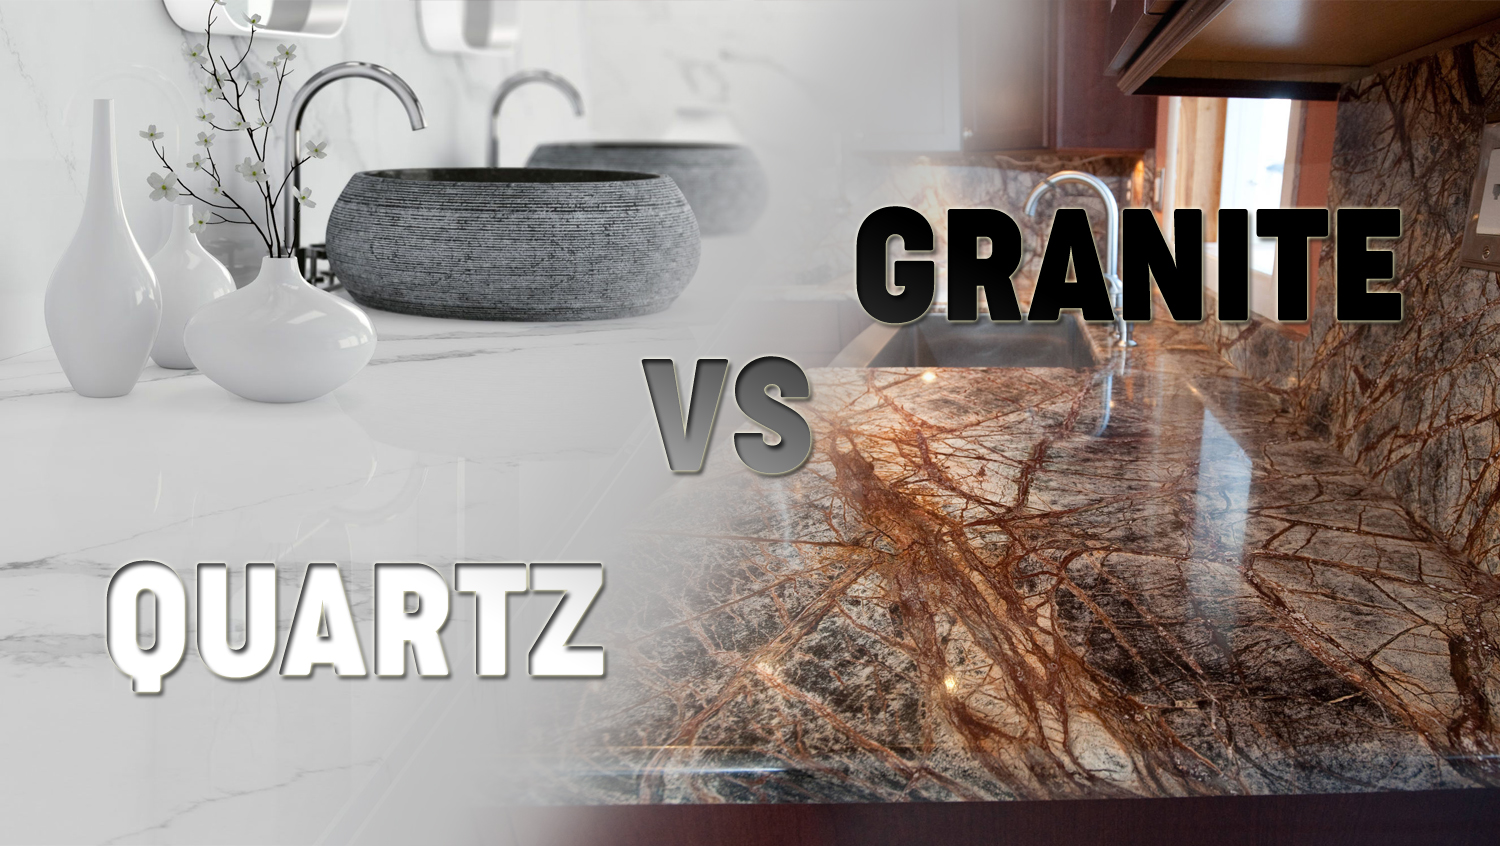 GRANITE COUNTERTOPS VS QUARTZ (PROS AND CONS)